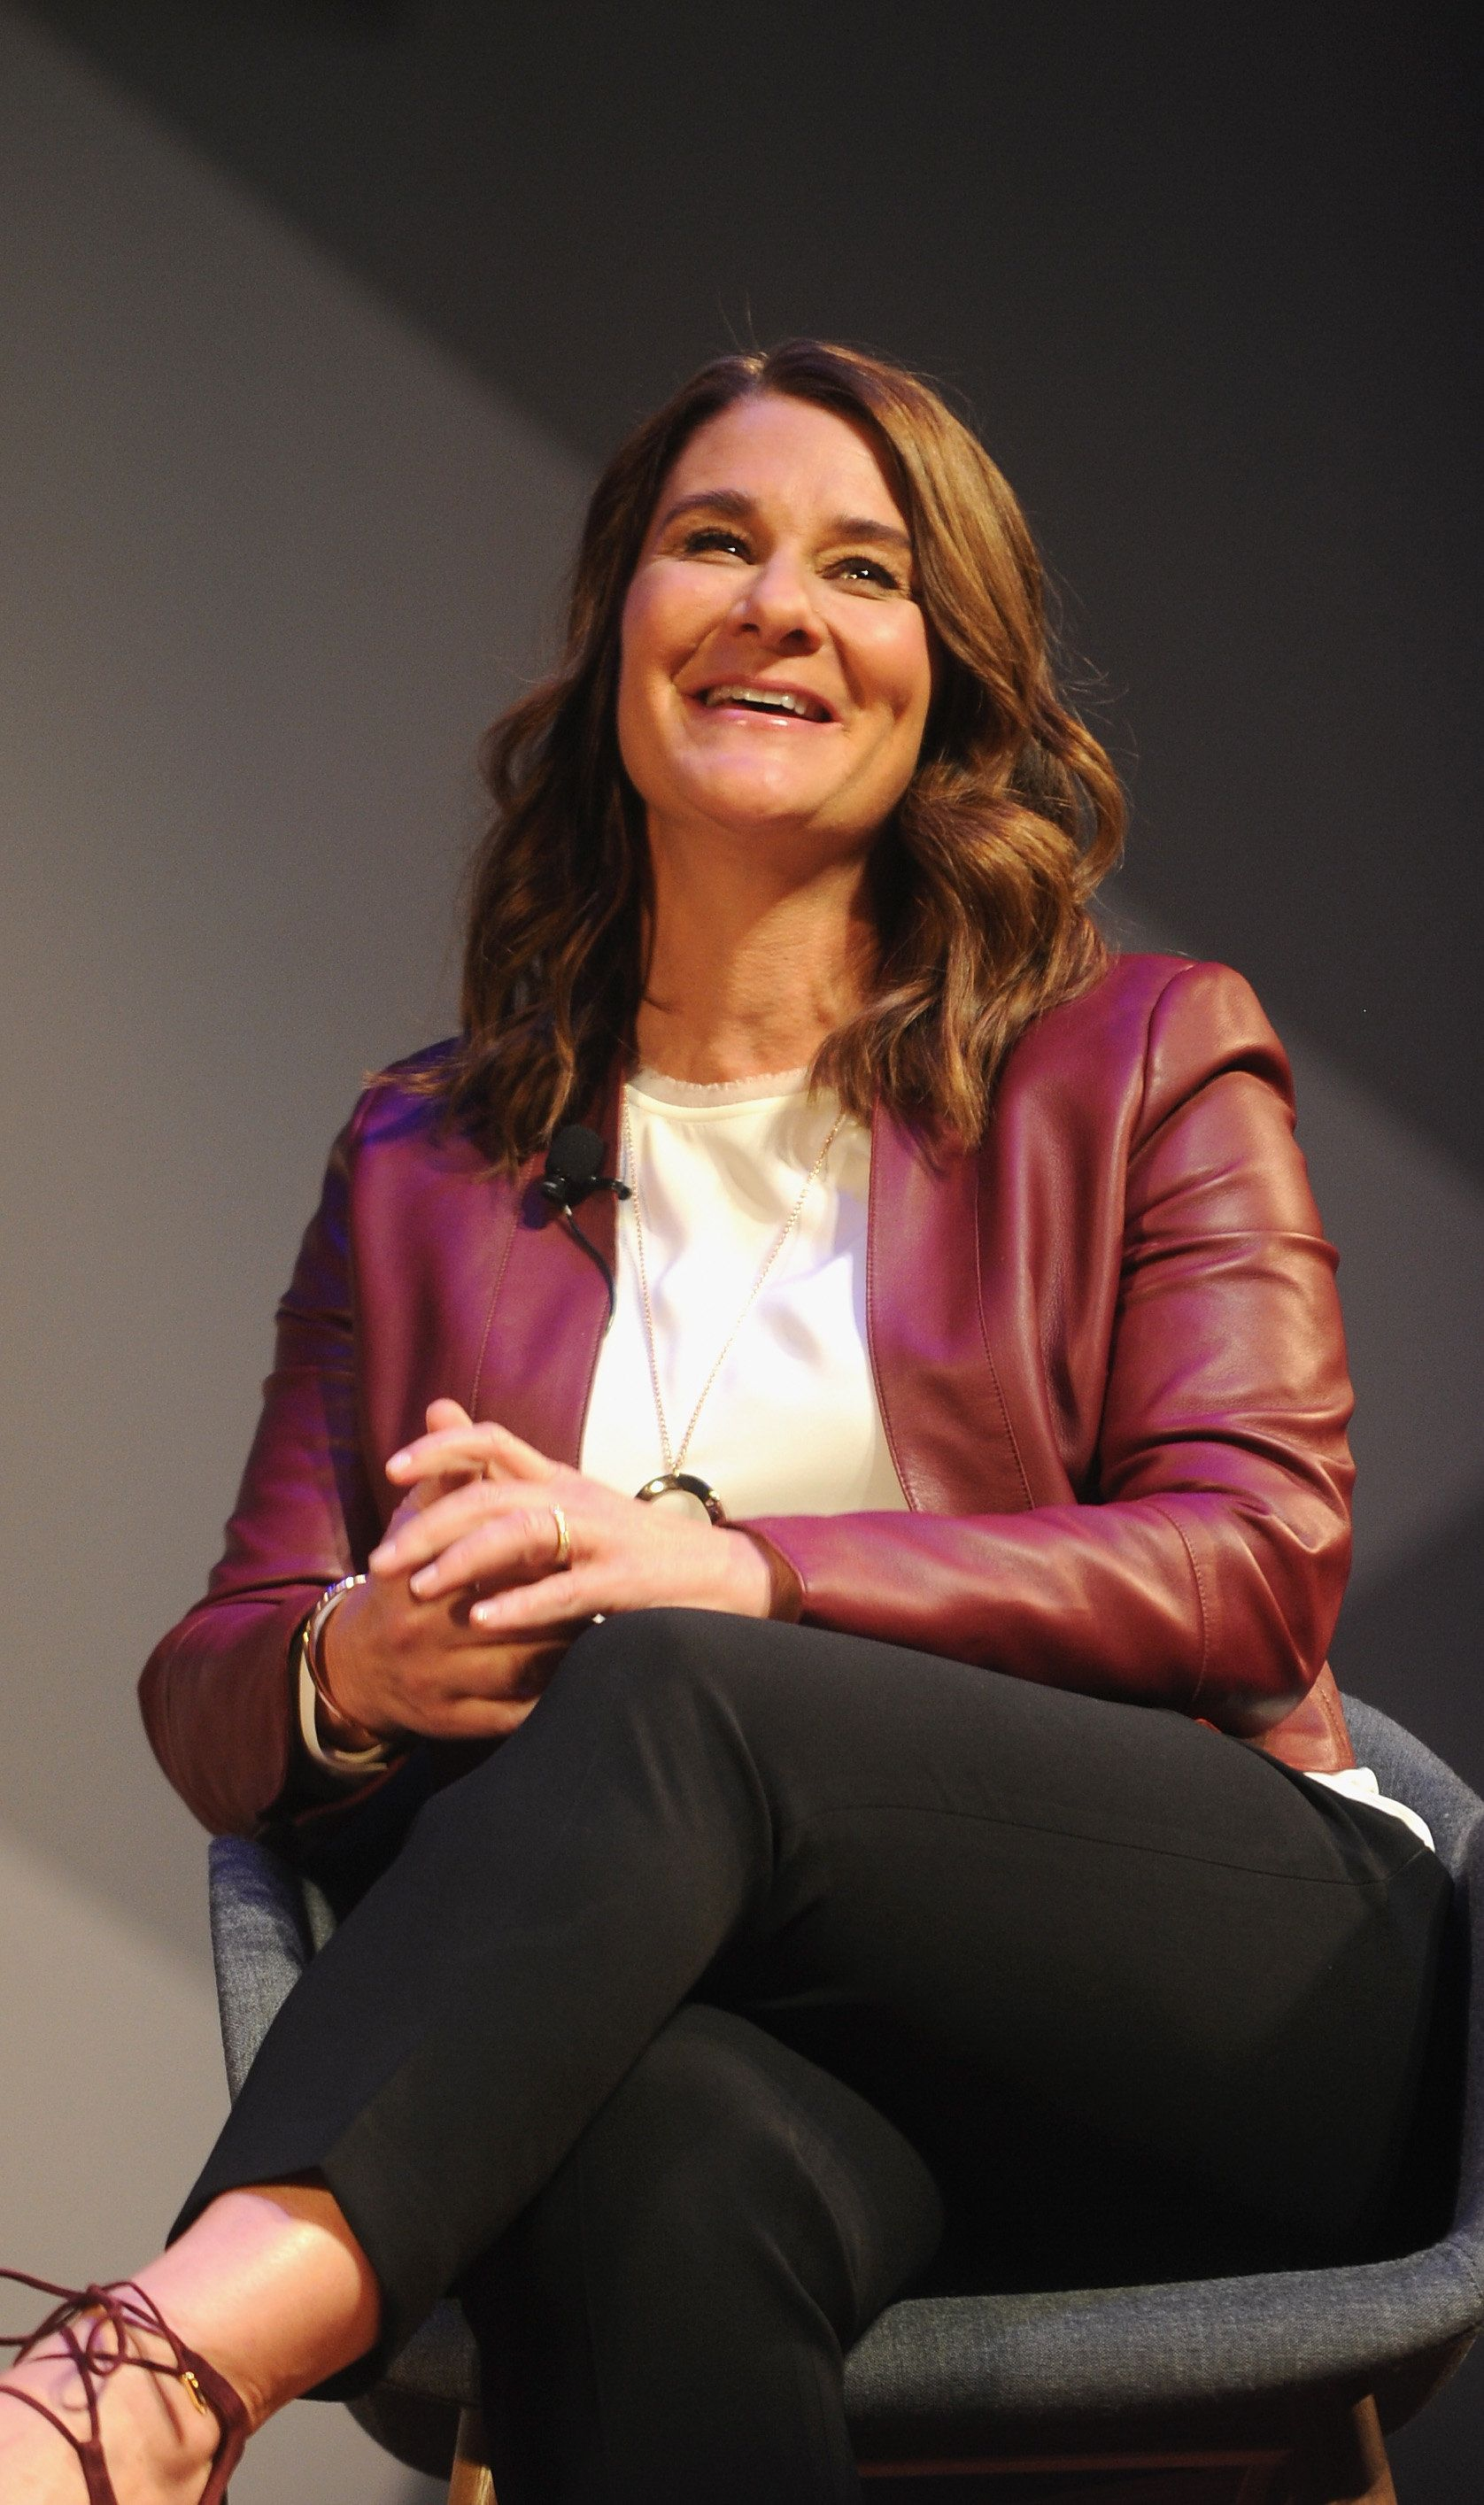 NEW YORK, NY - NOVEMBER 03:  Philanthropist Melinda Gates speaks onstage during the Fast Company Innovation Festival 2016 - Melinda Gates & Facebook's Regina Dugan at Skirball Center, NYU on November 3, 2016 in New York City.  (Photo by Brad Barket/Getty Images for Fast Company)